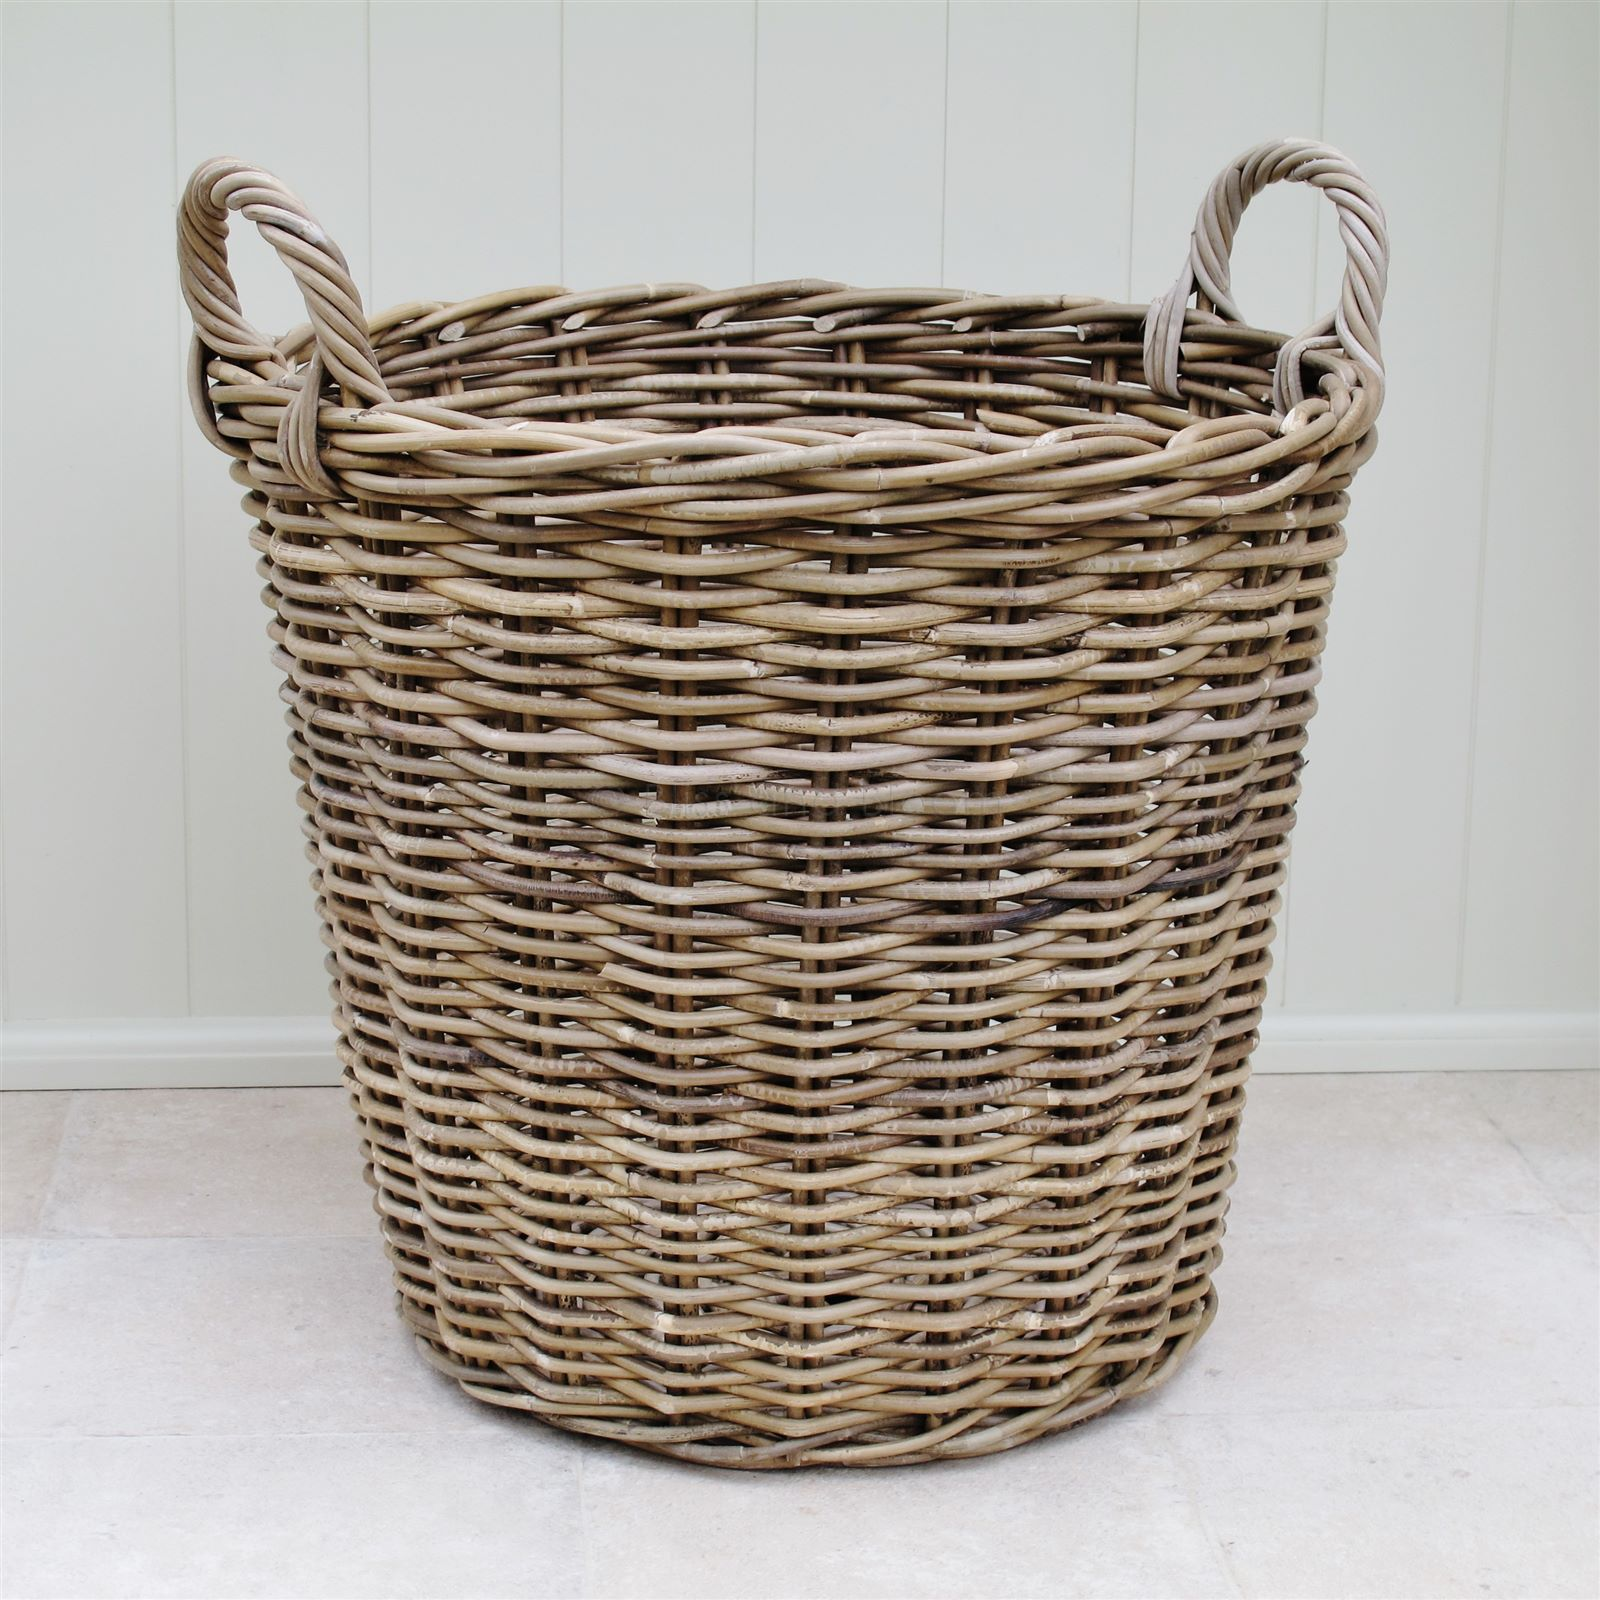 Buy Grasmere Grey Wash Wicker Storage Basket From The: Large Rattan Log Laundry Basket